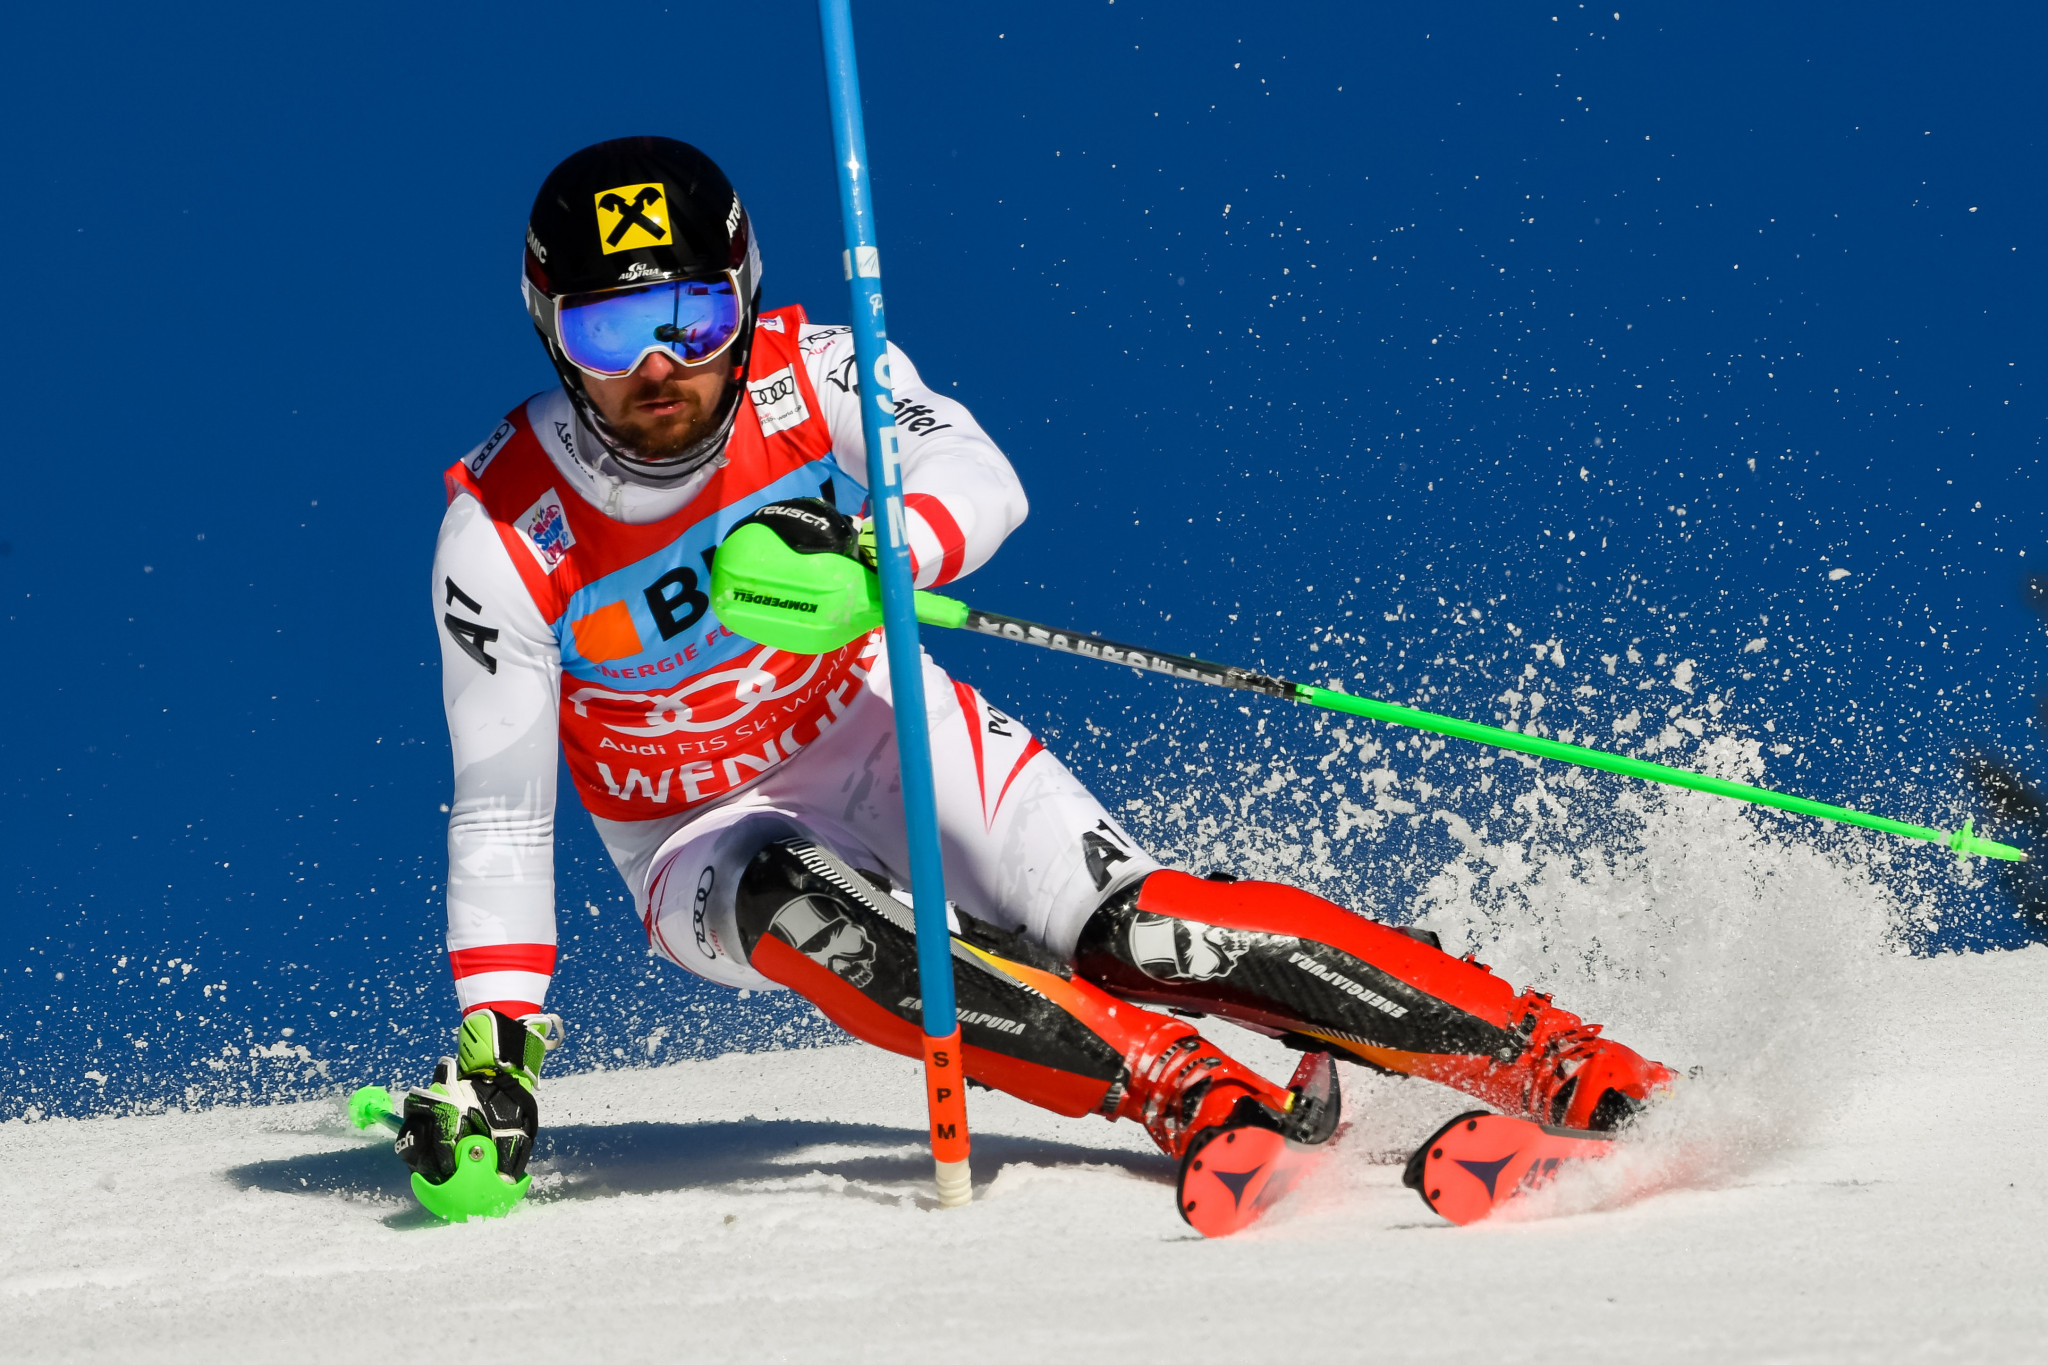 Goggia wins Cortina downhill as Lindsey Vonn makes main mistake